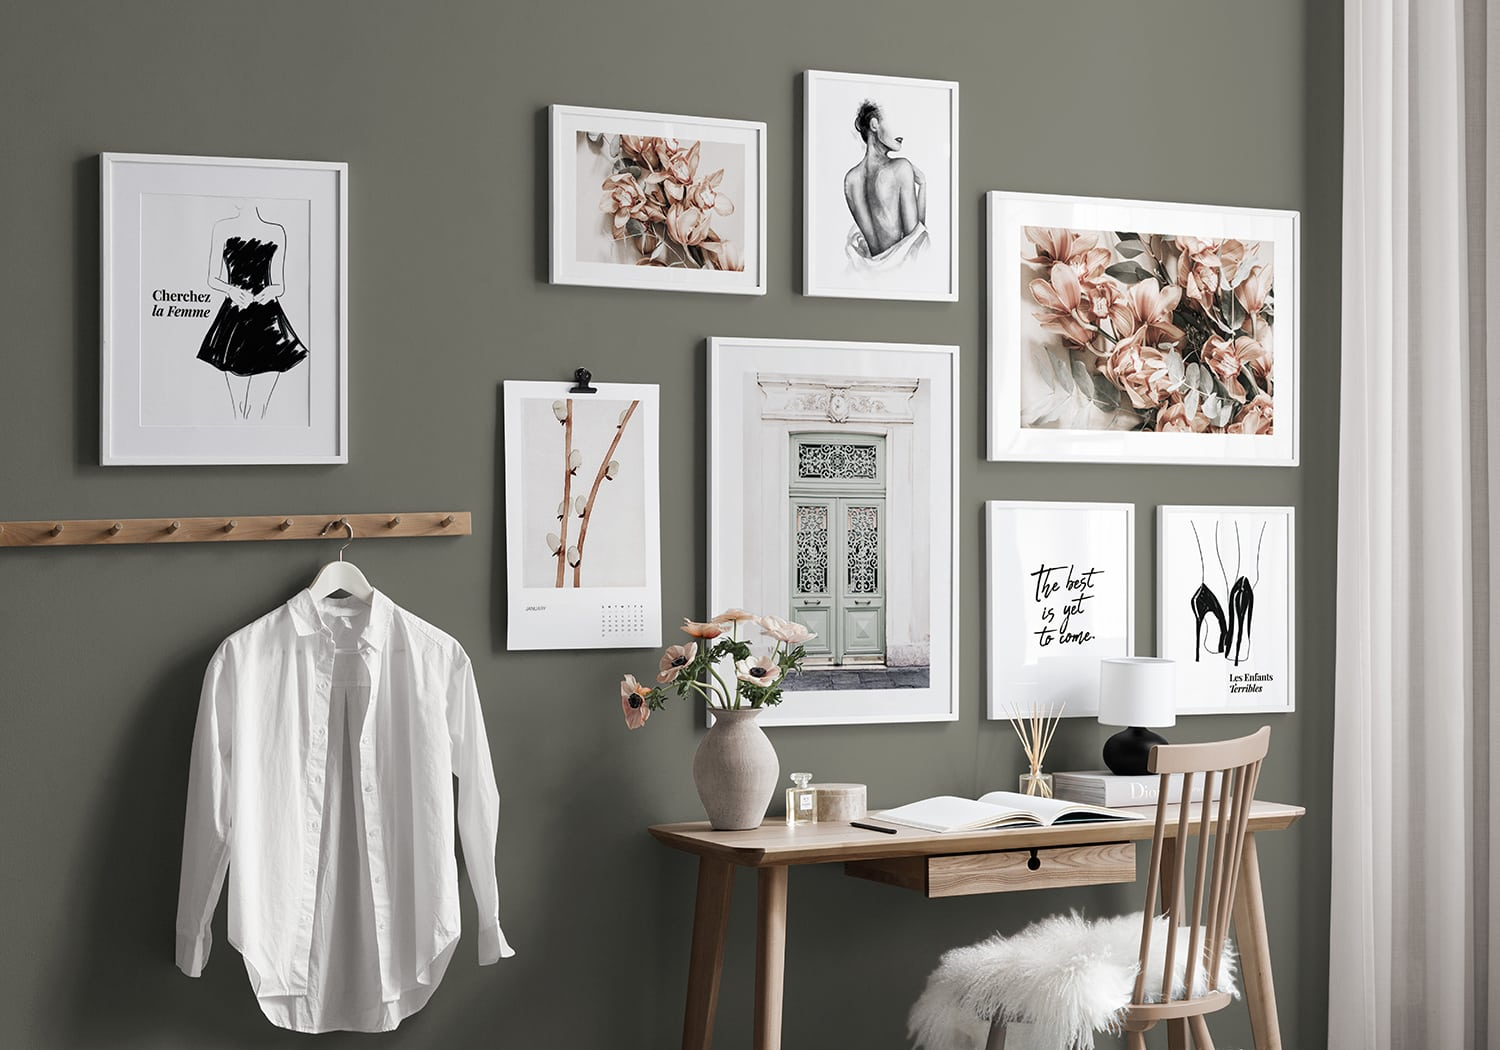 creating a gallery wall of art in white frames on olive green wall